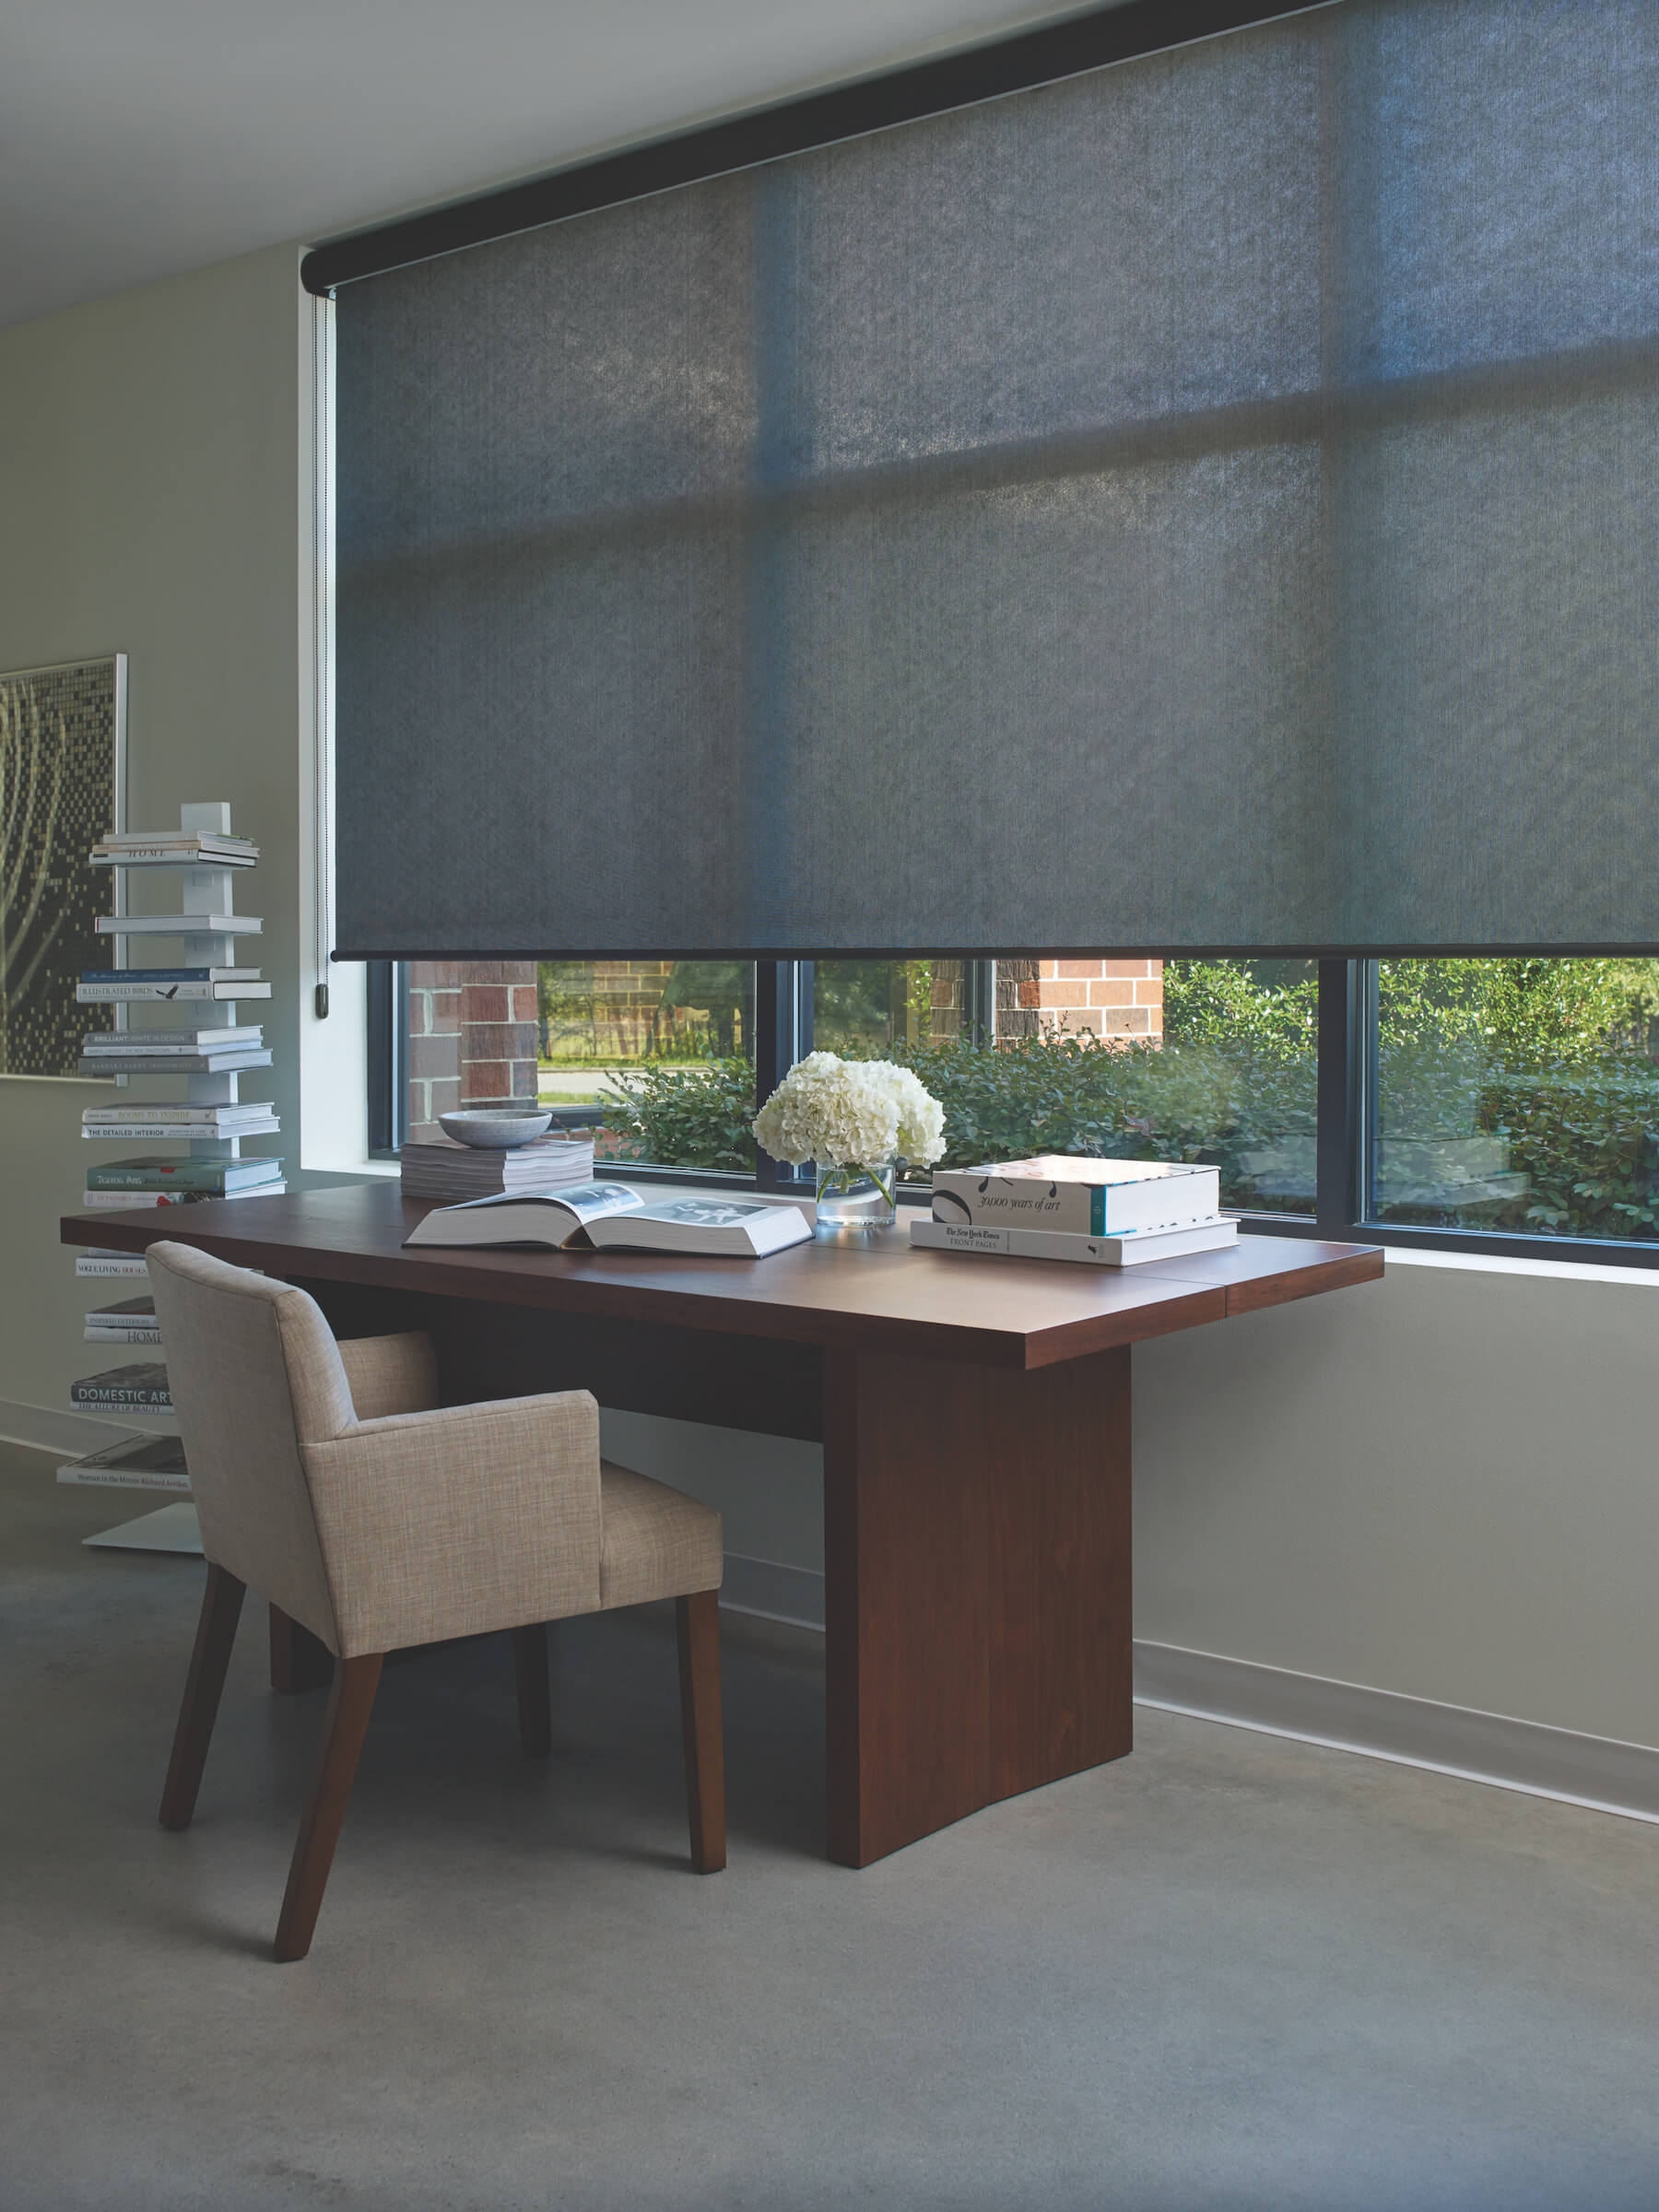 Designer Screen Shades lowered in office complex